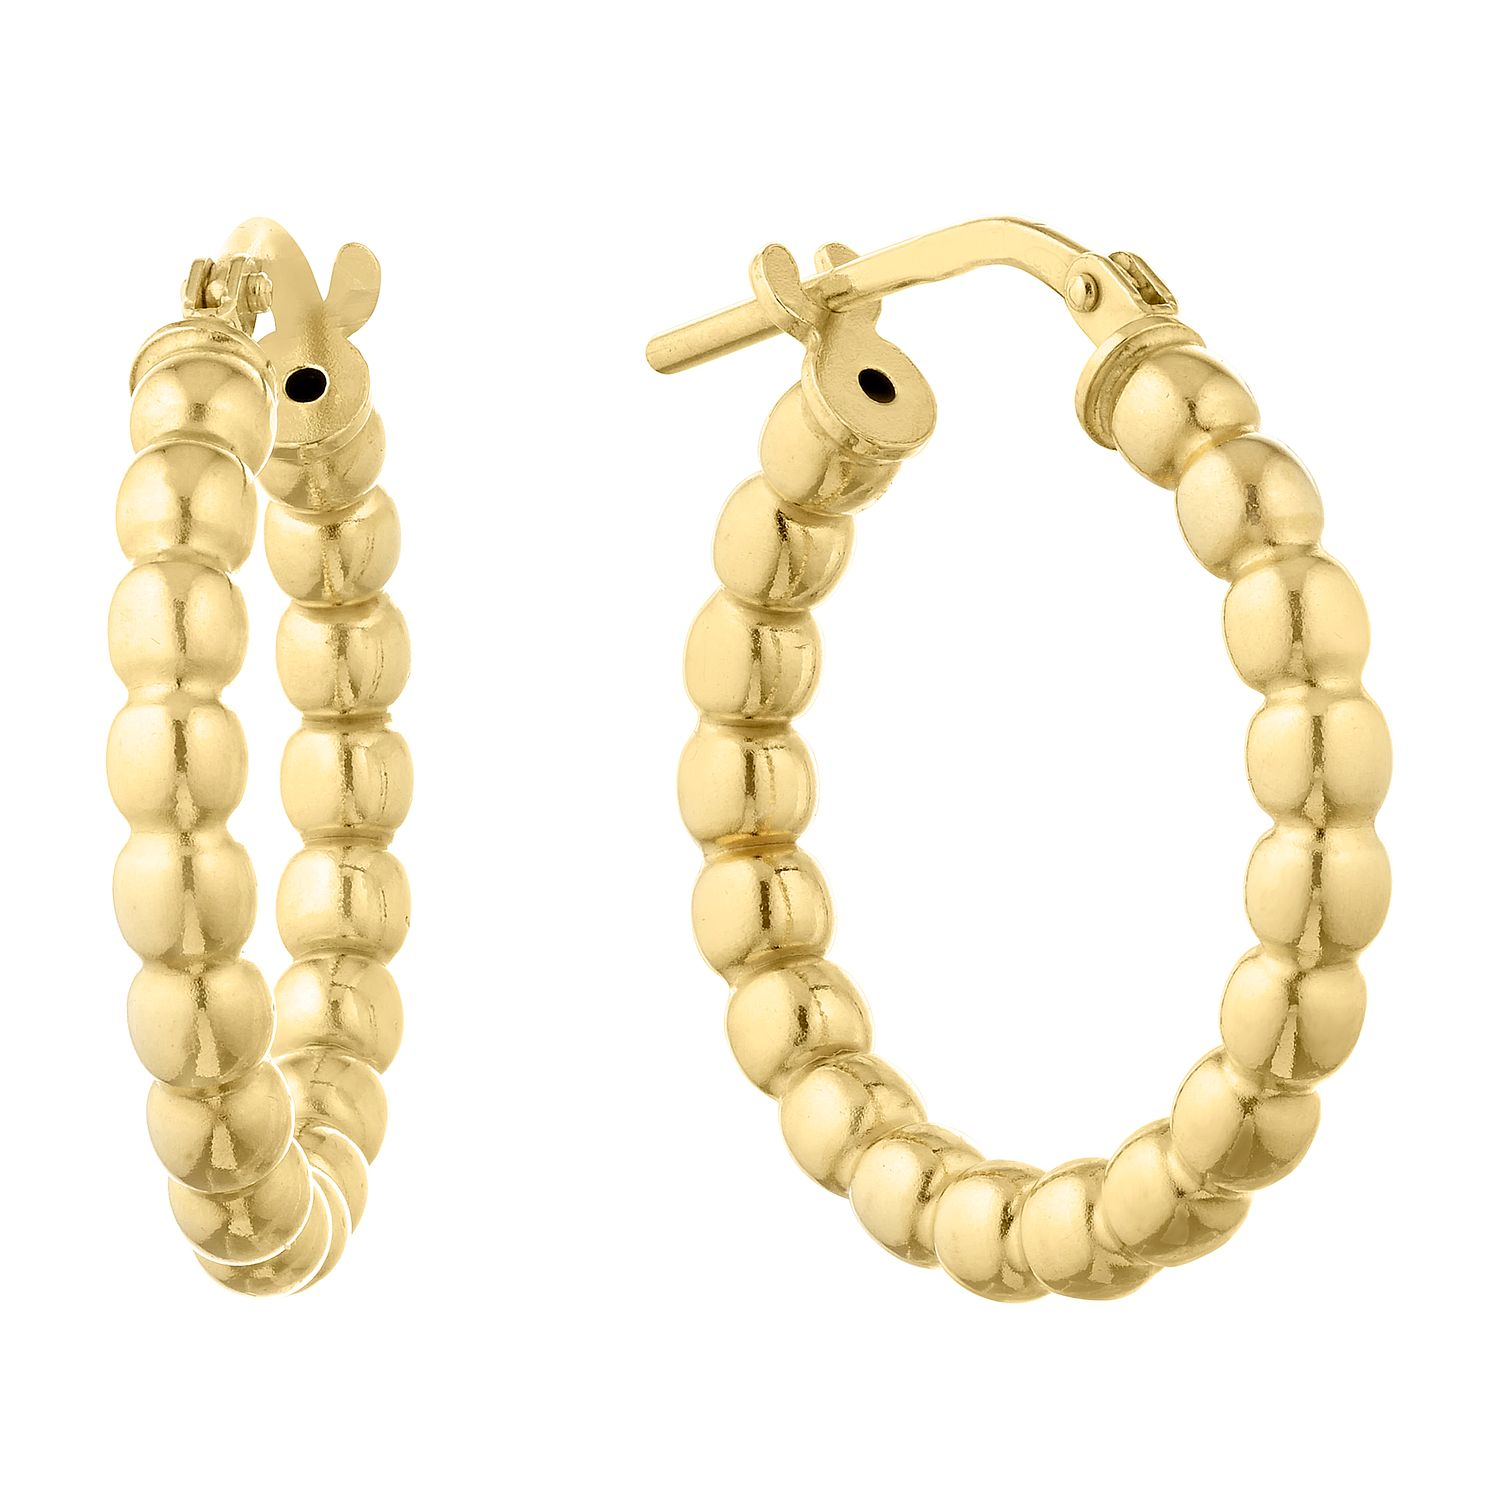 Silver Yellow Gold Plated Ball Hoop Earrings - Product number 1058487